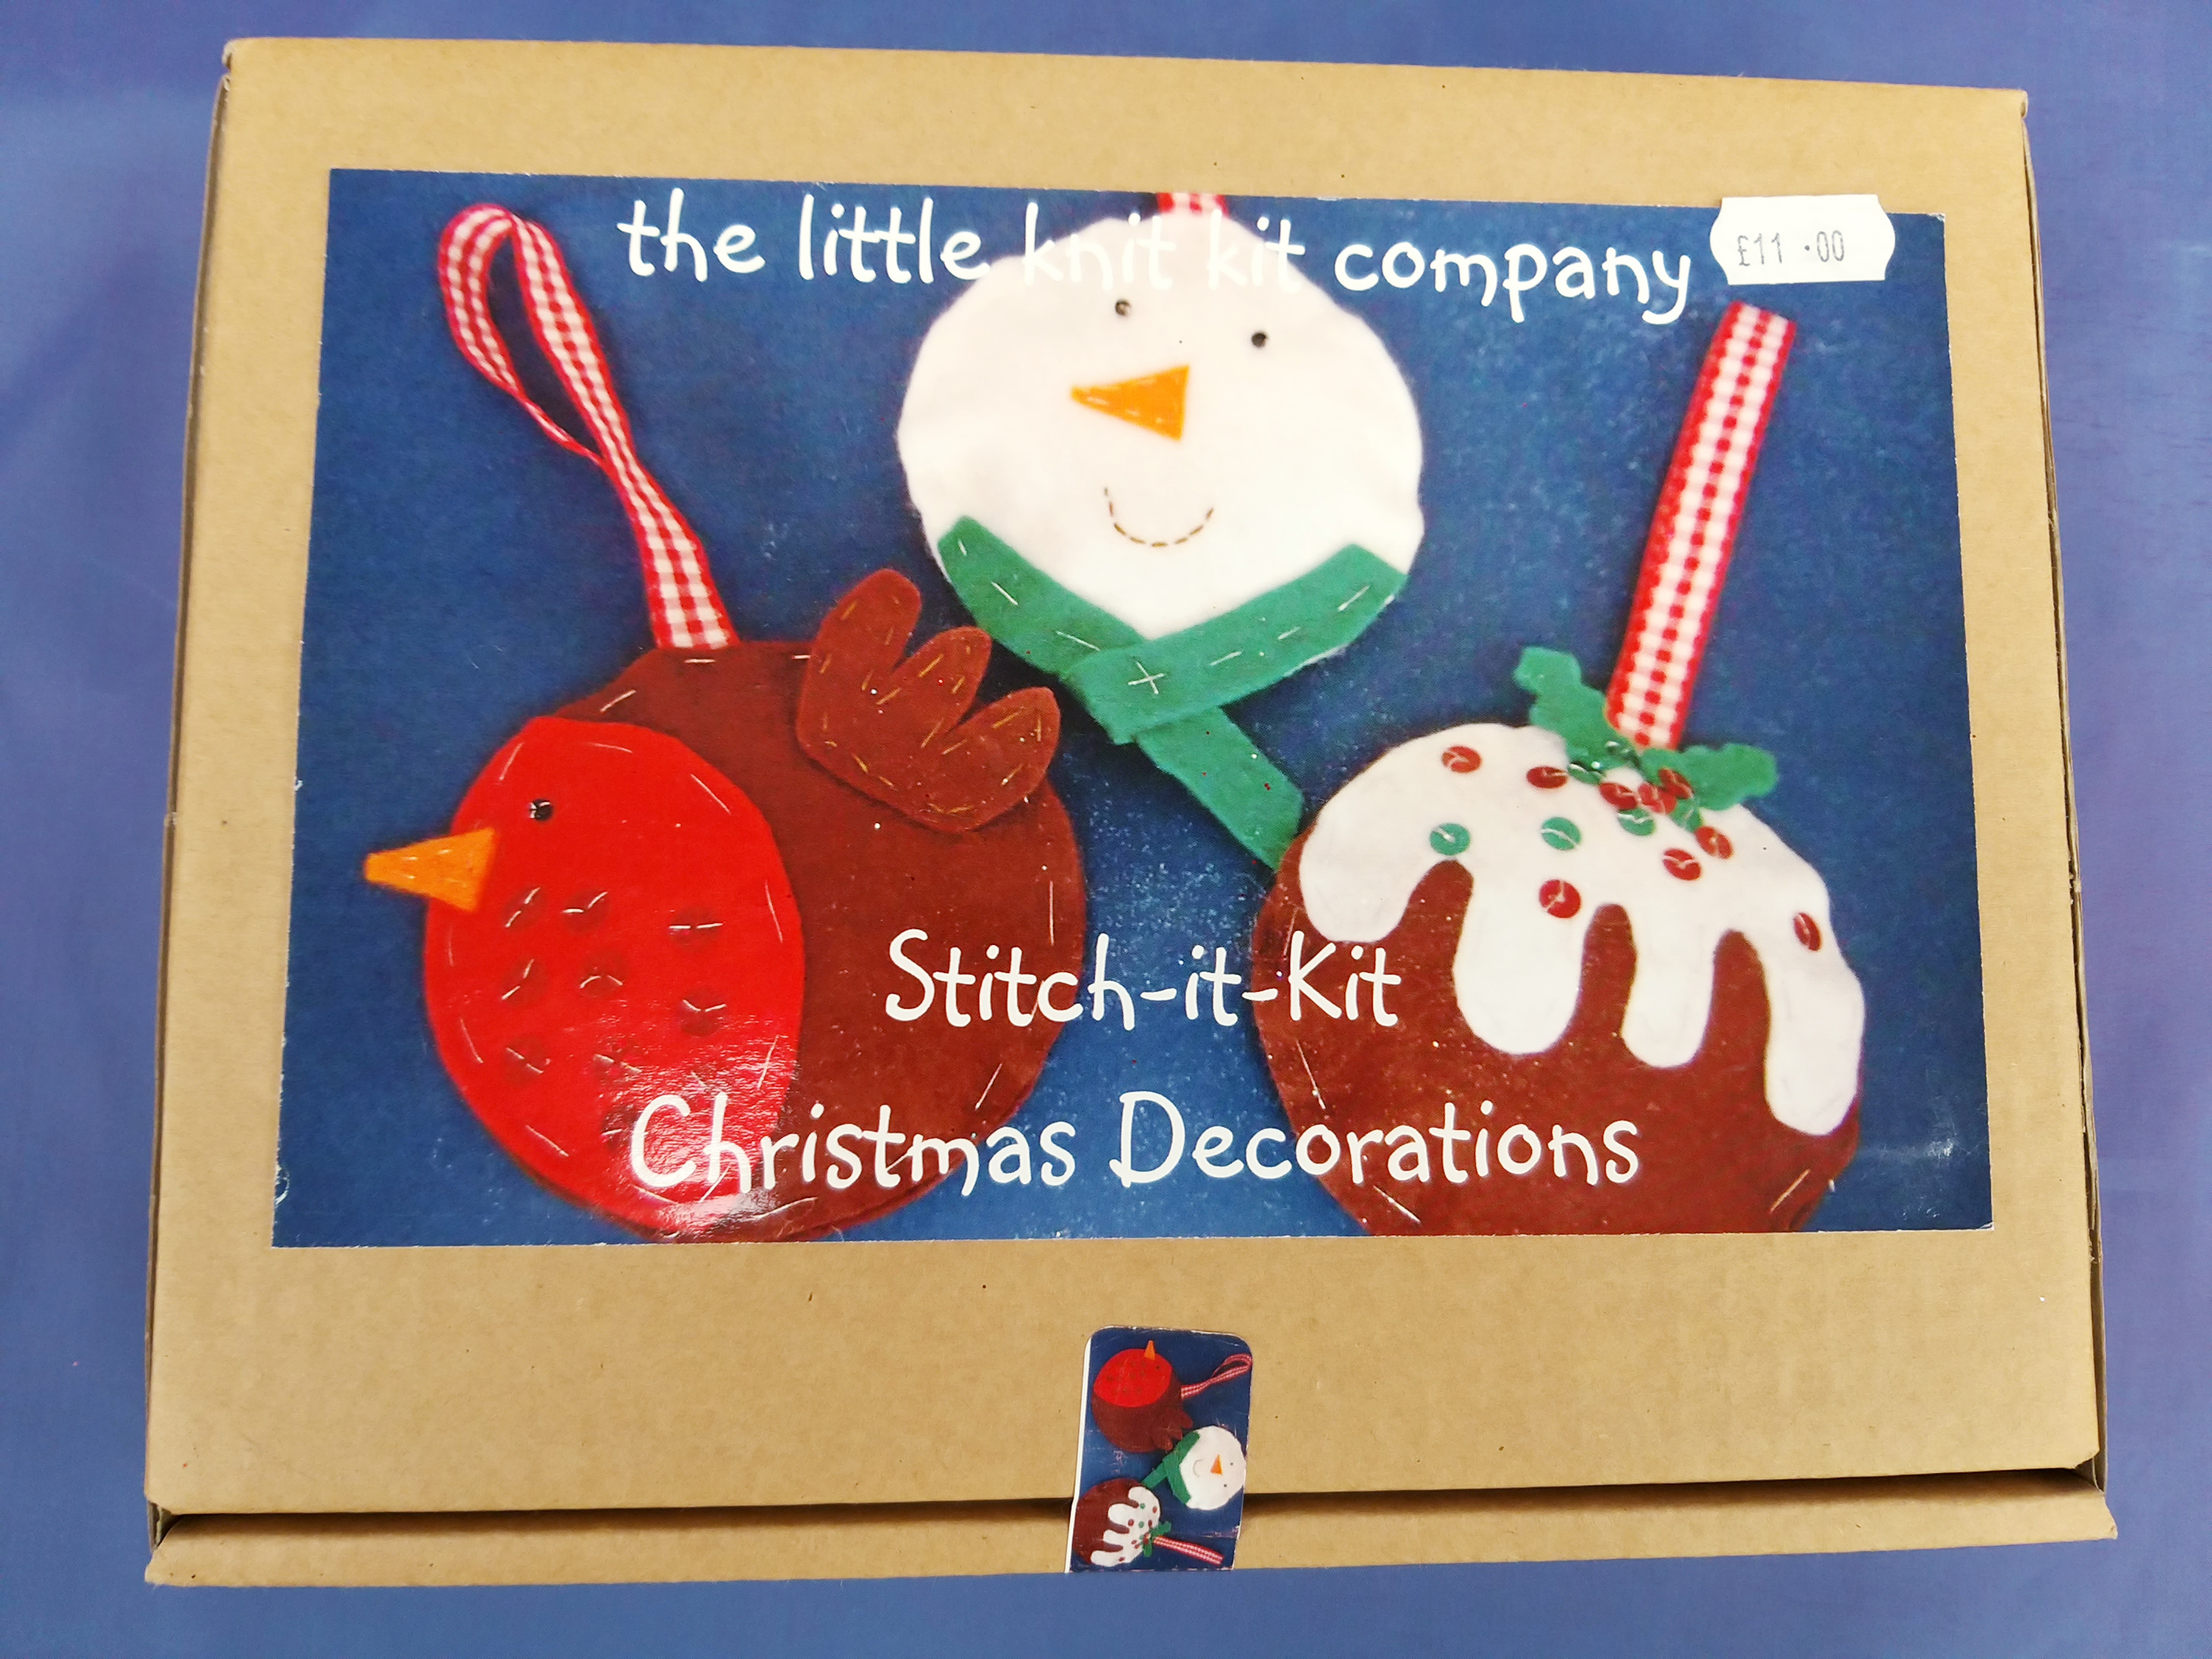 Stitch your own Christmas decorations